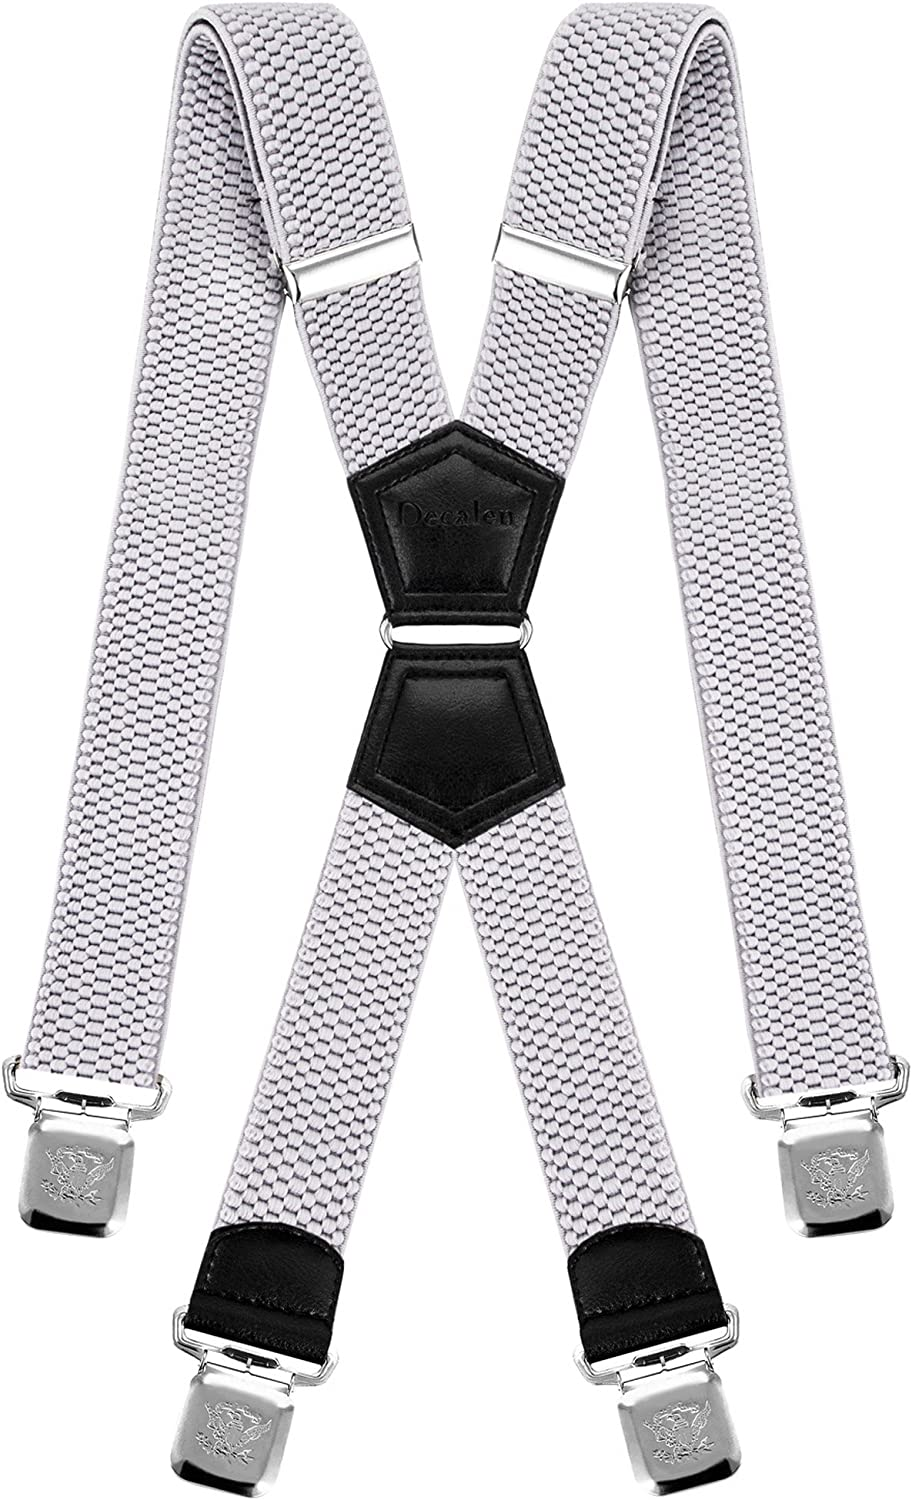 Mens Suspenders X Style Very Strong Clips Adjustable One Size Fits All  Heavy Duty Braces (Baby Blue) at Amazon Men's Clothing store